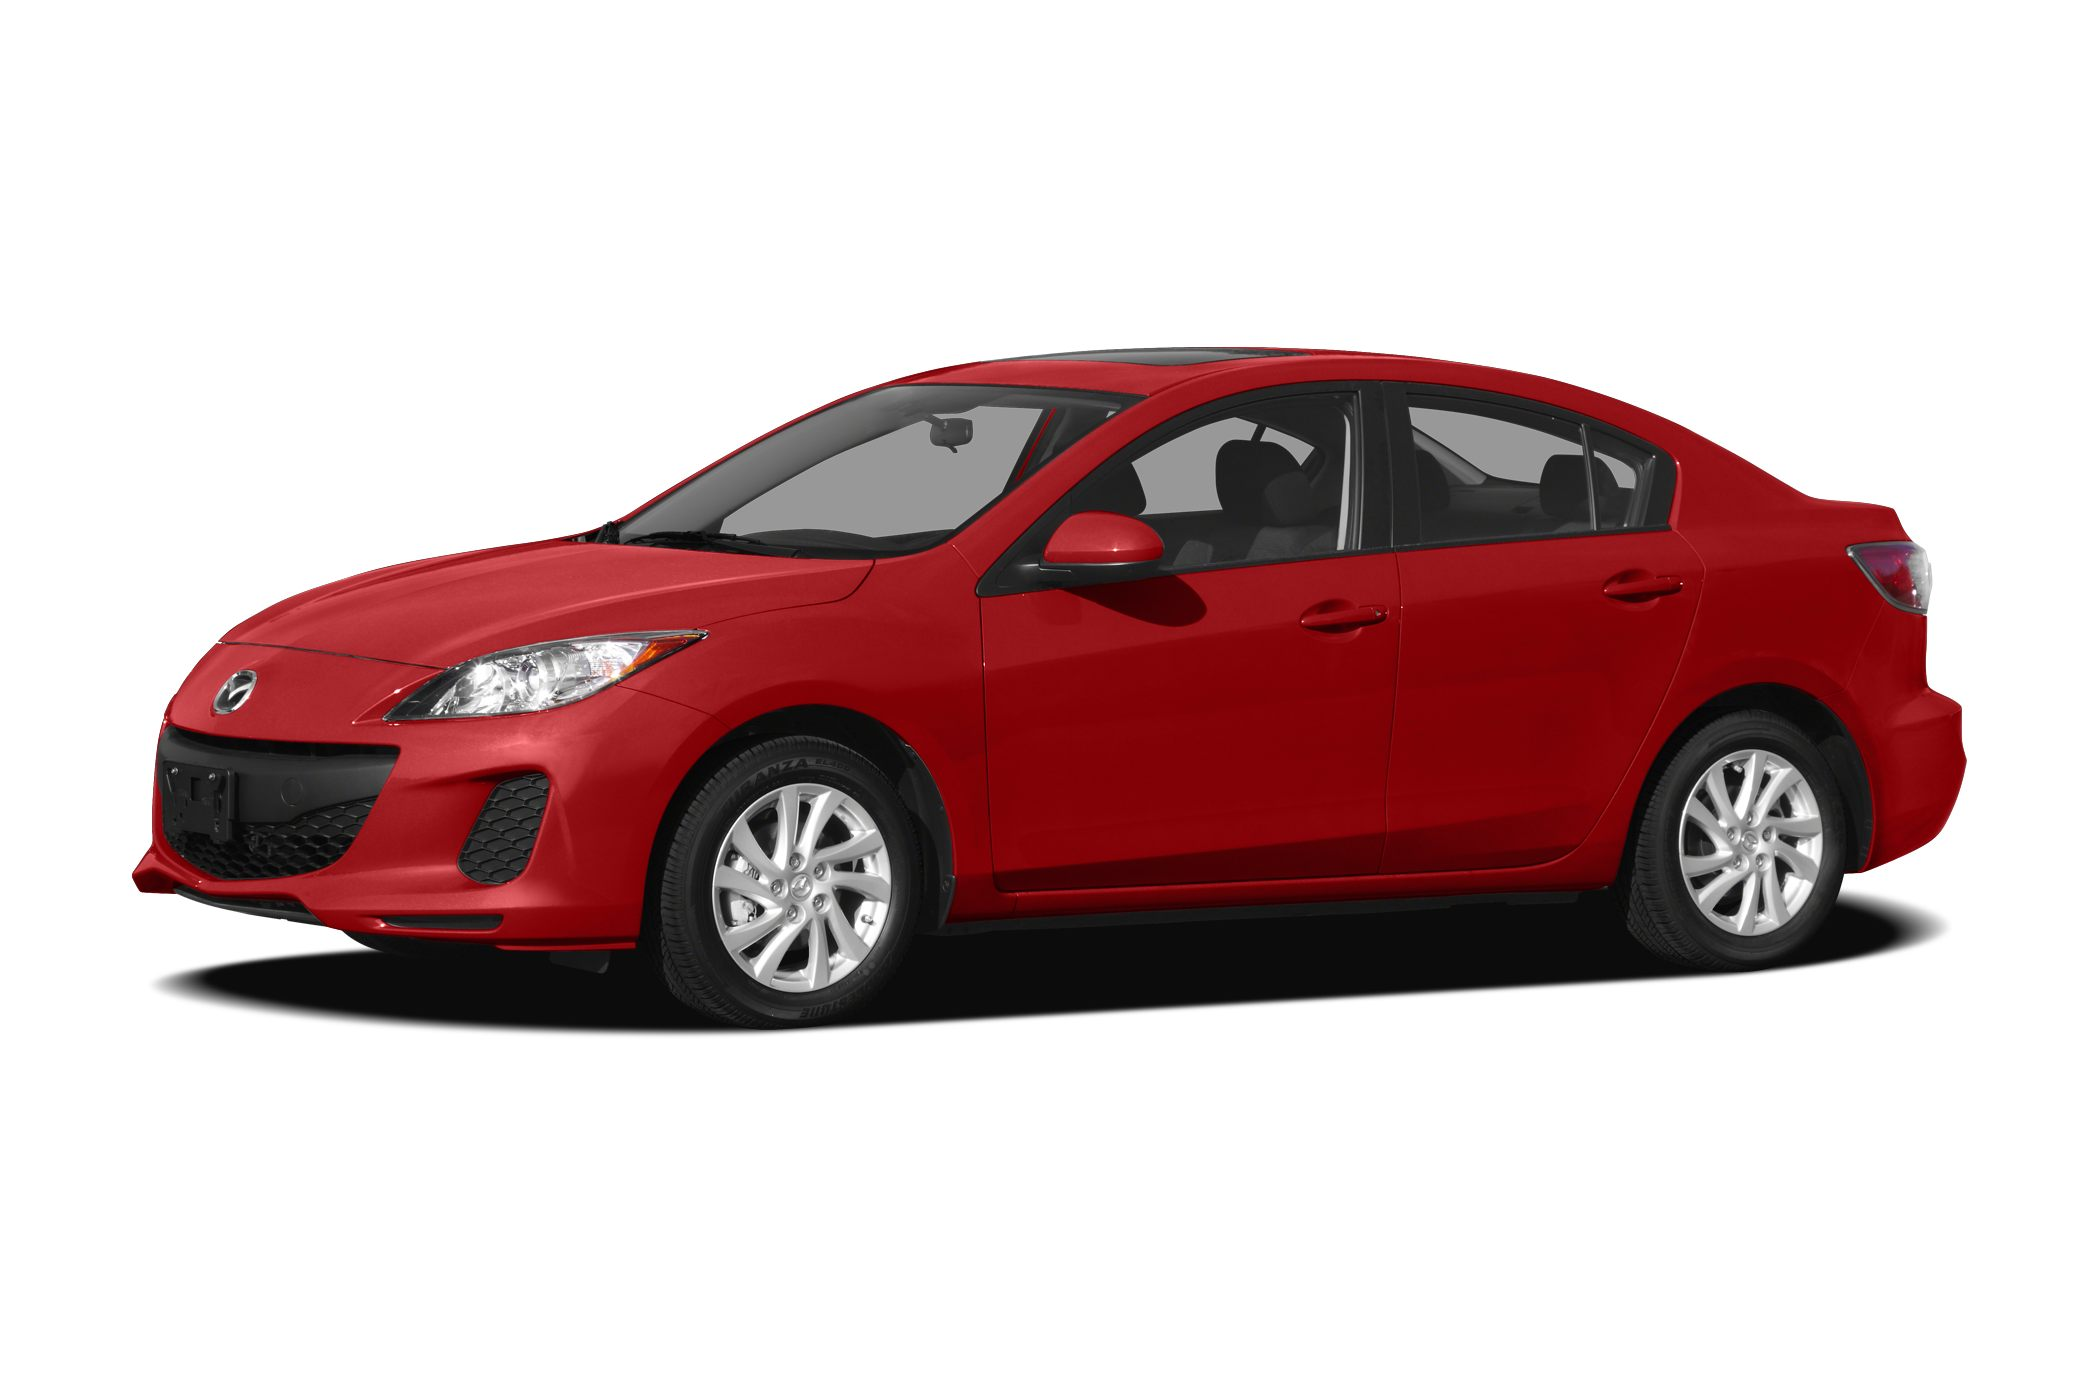 2012 Mazda Mazda3 I Touring Hatchback for sale in Front Royal for $13,176 with 53,182 miles.